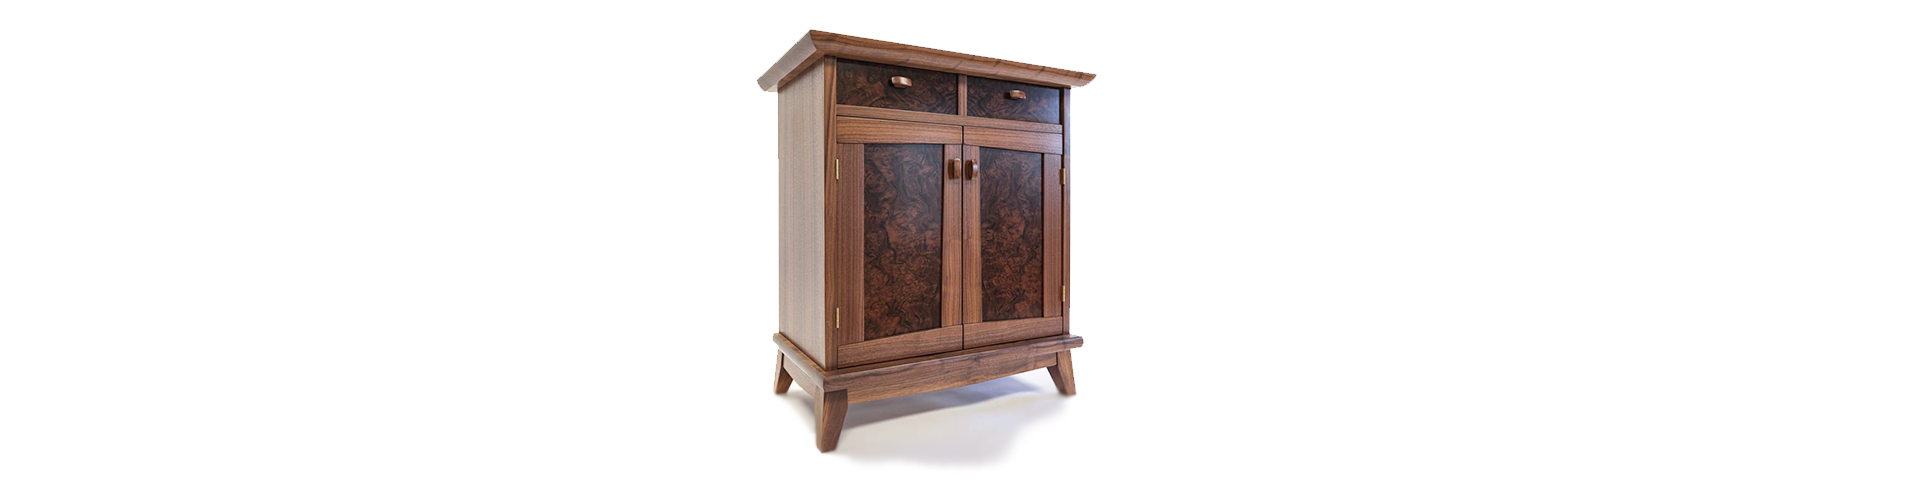 walnut burl cabinet background custom made fine wood furniture